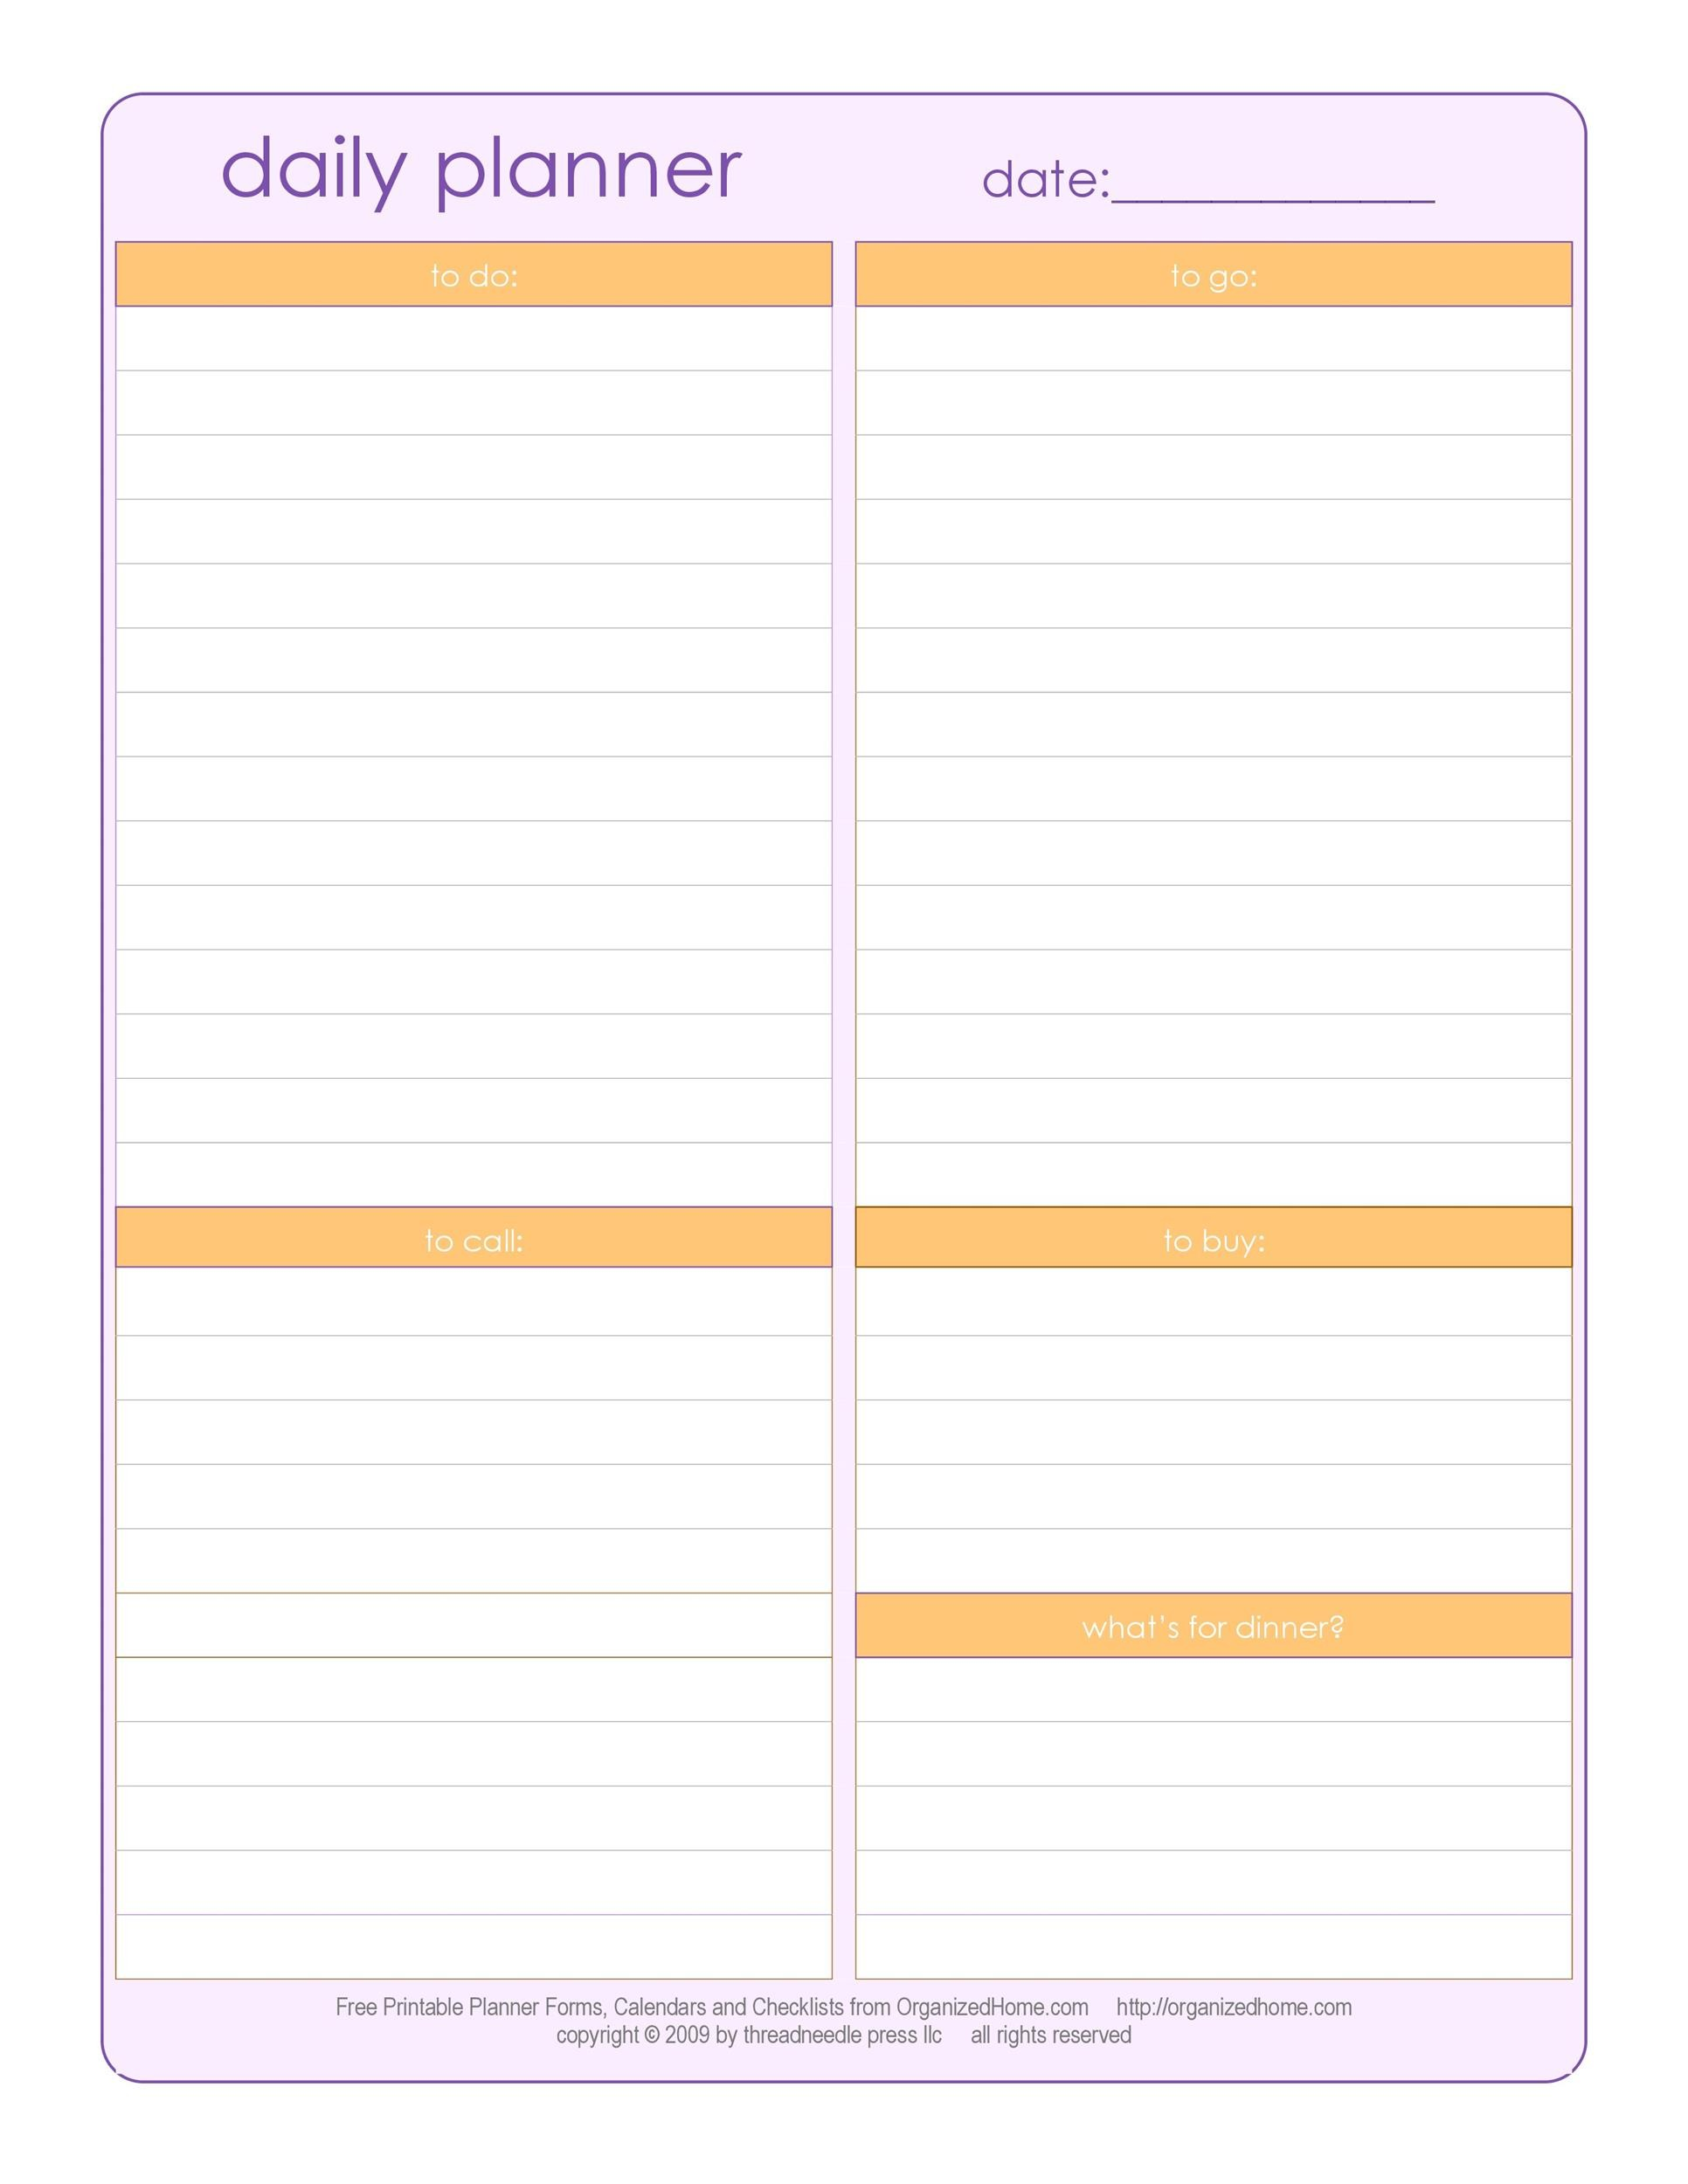 40 printable daily planner templates free template lab printable daily planner template 02 saigontimesfo